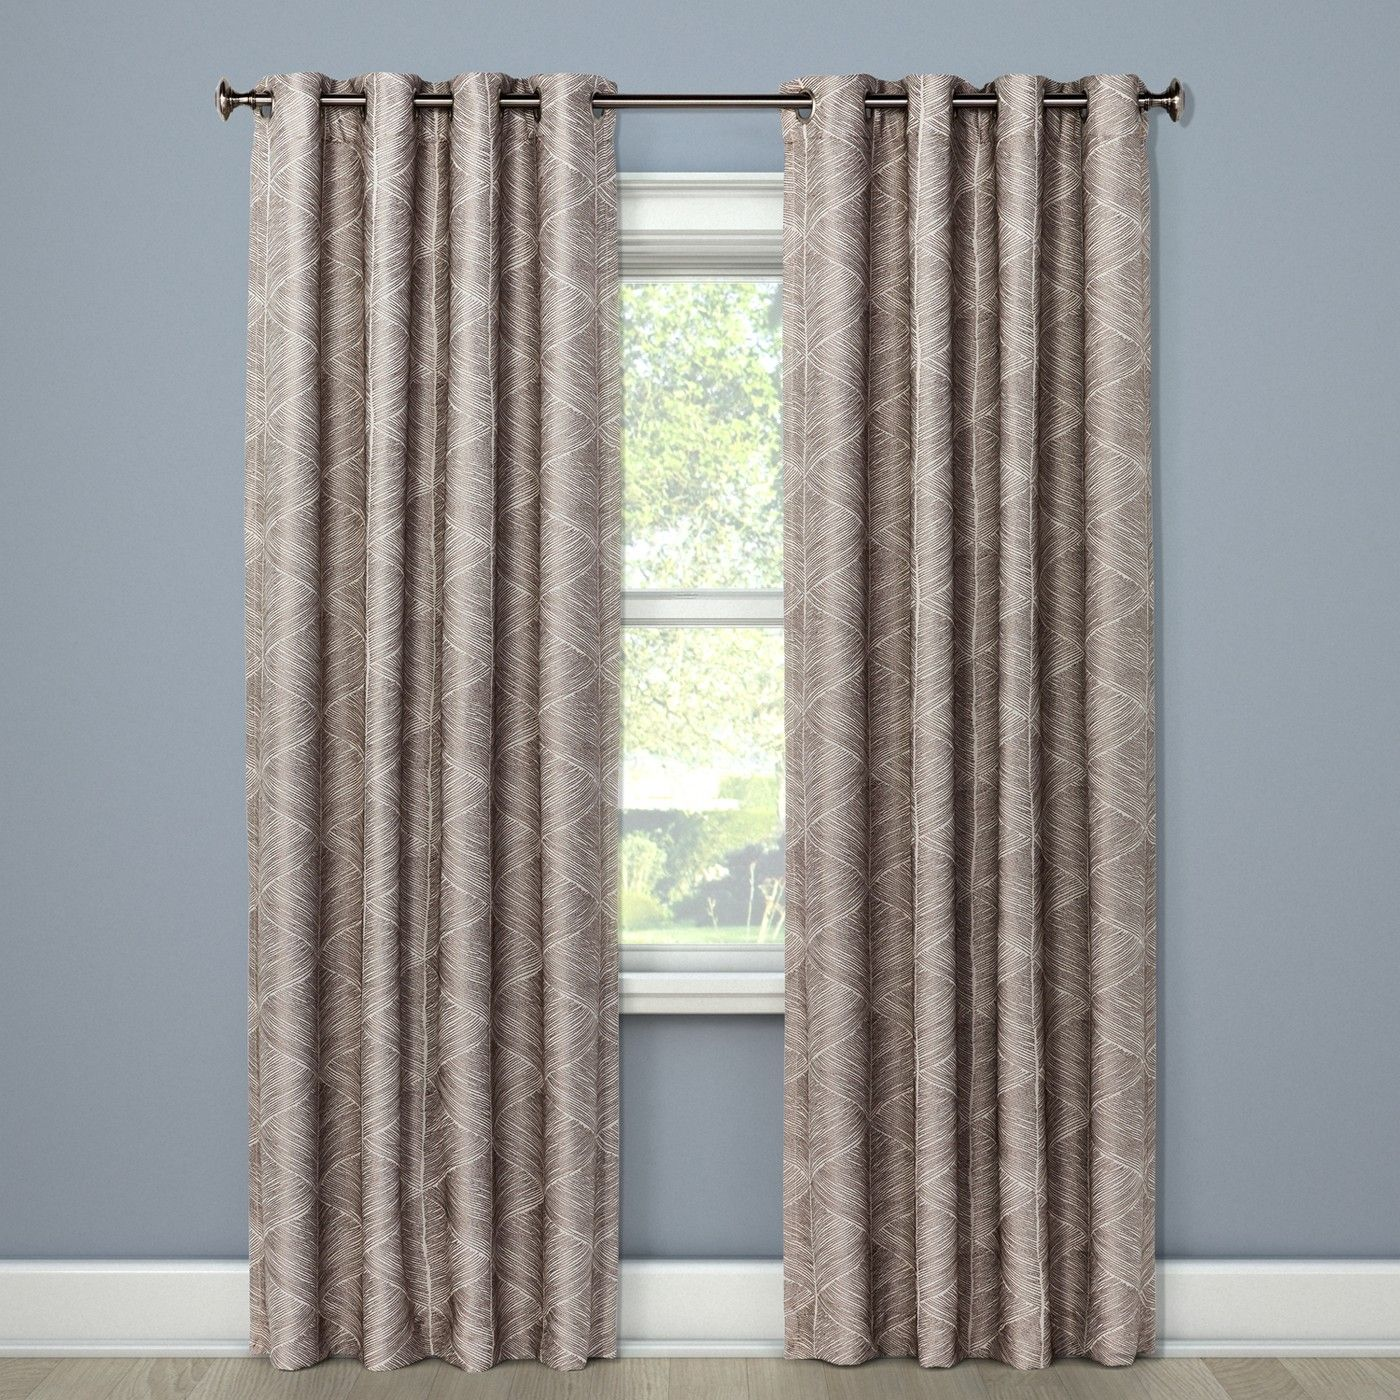 Modern Stroke Curtain Panels 84 X50 Project 62 Image 1 Of 3